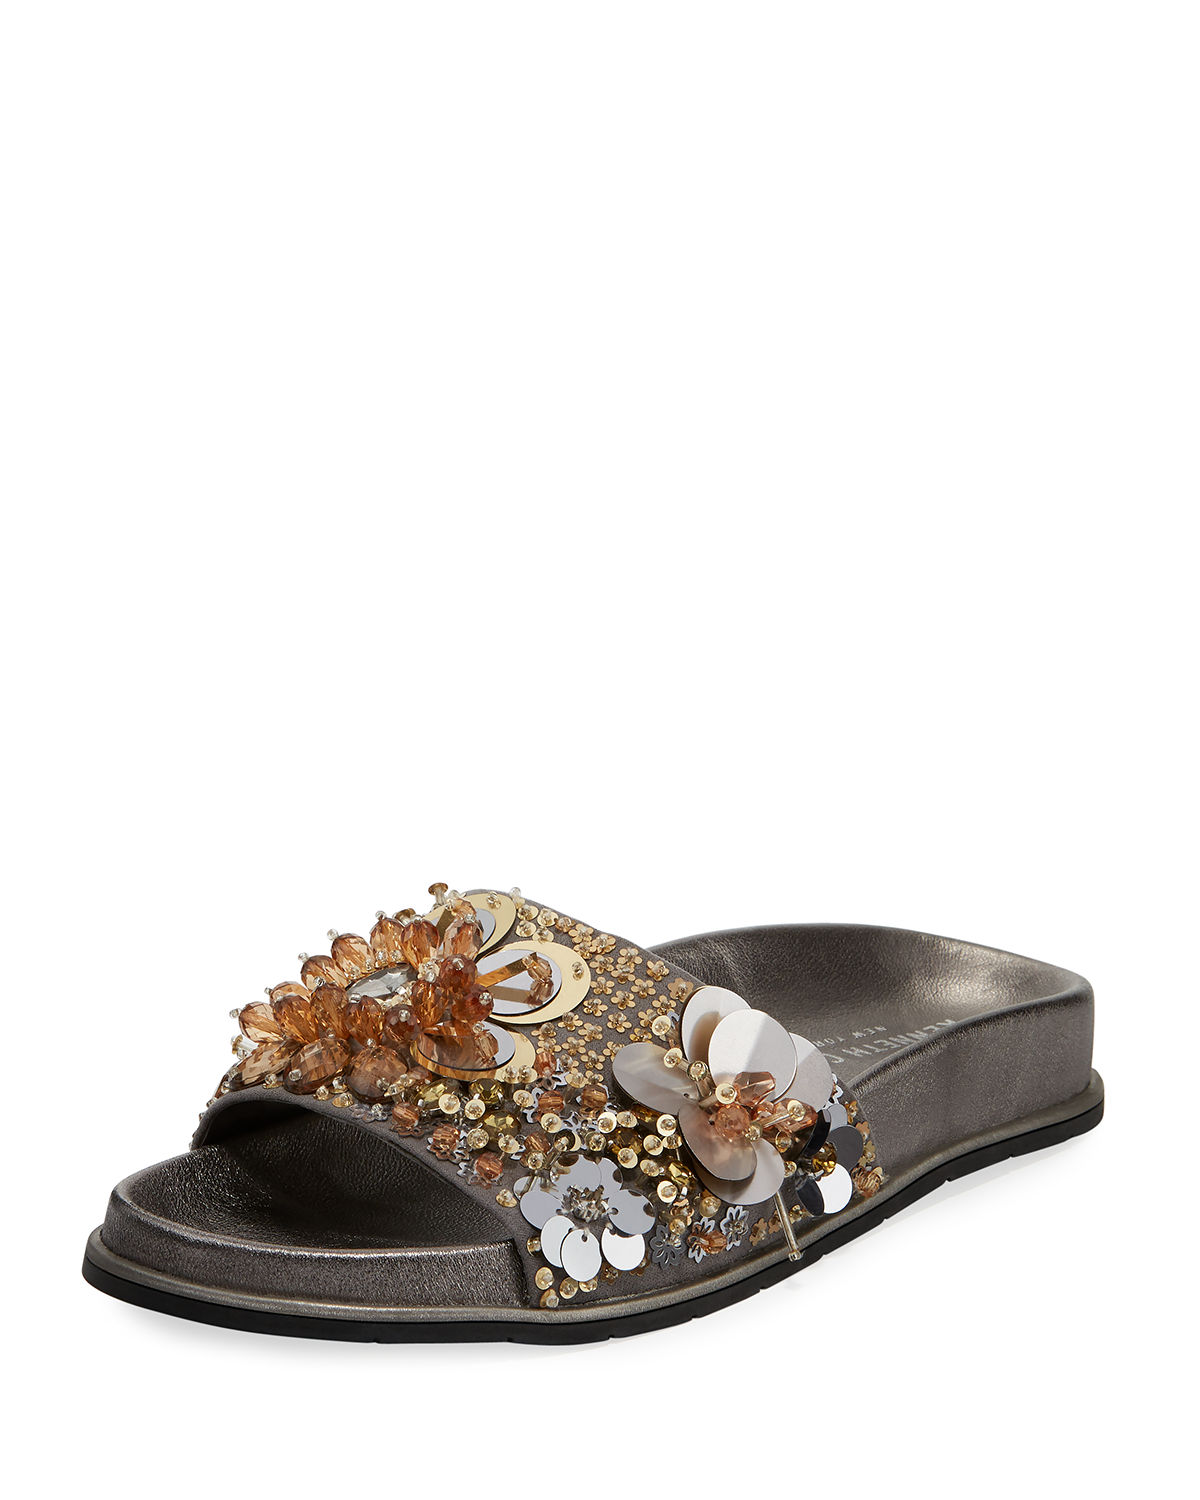 c2b39a7cabf9 Kenneth Cole Women s Xenia Sequin-Embellished Pool Slide Sandals In Silver  Gold